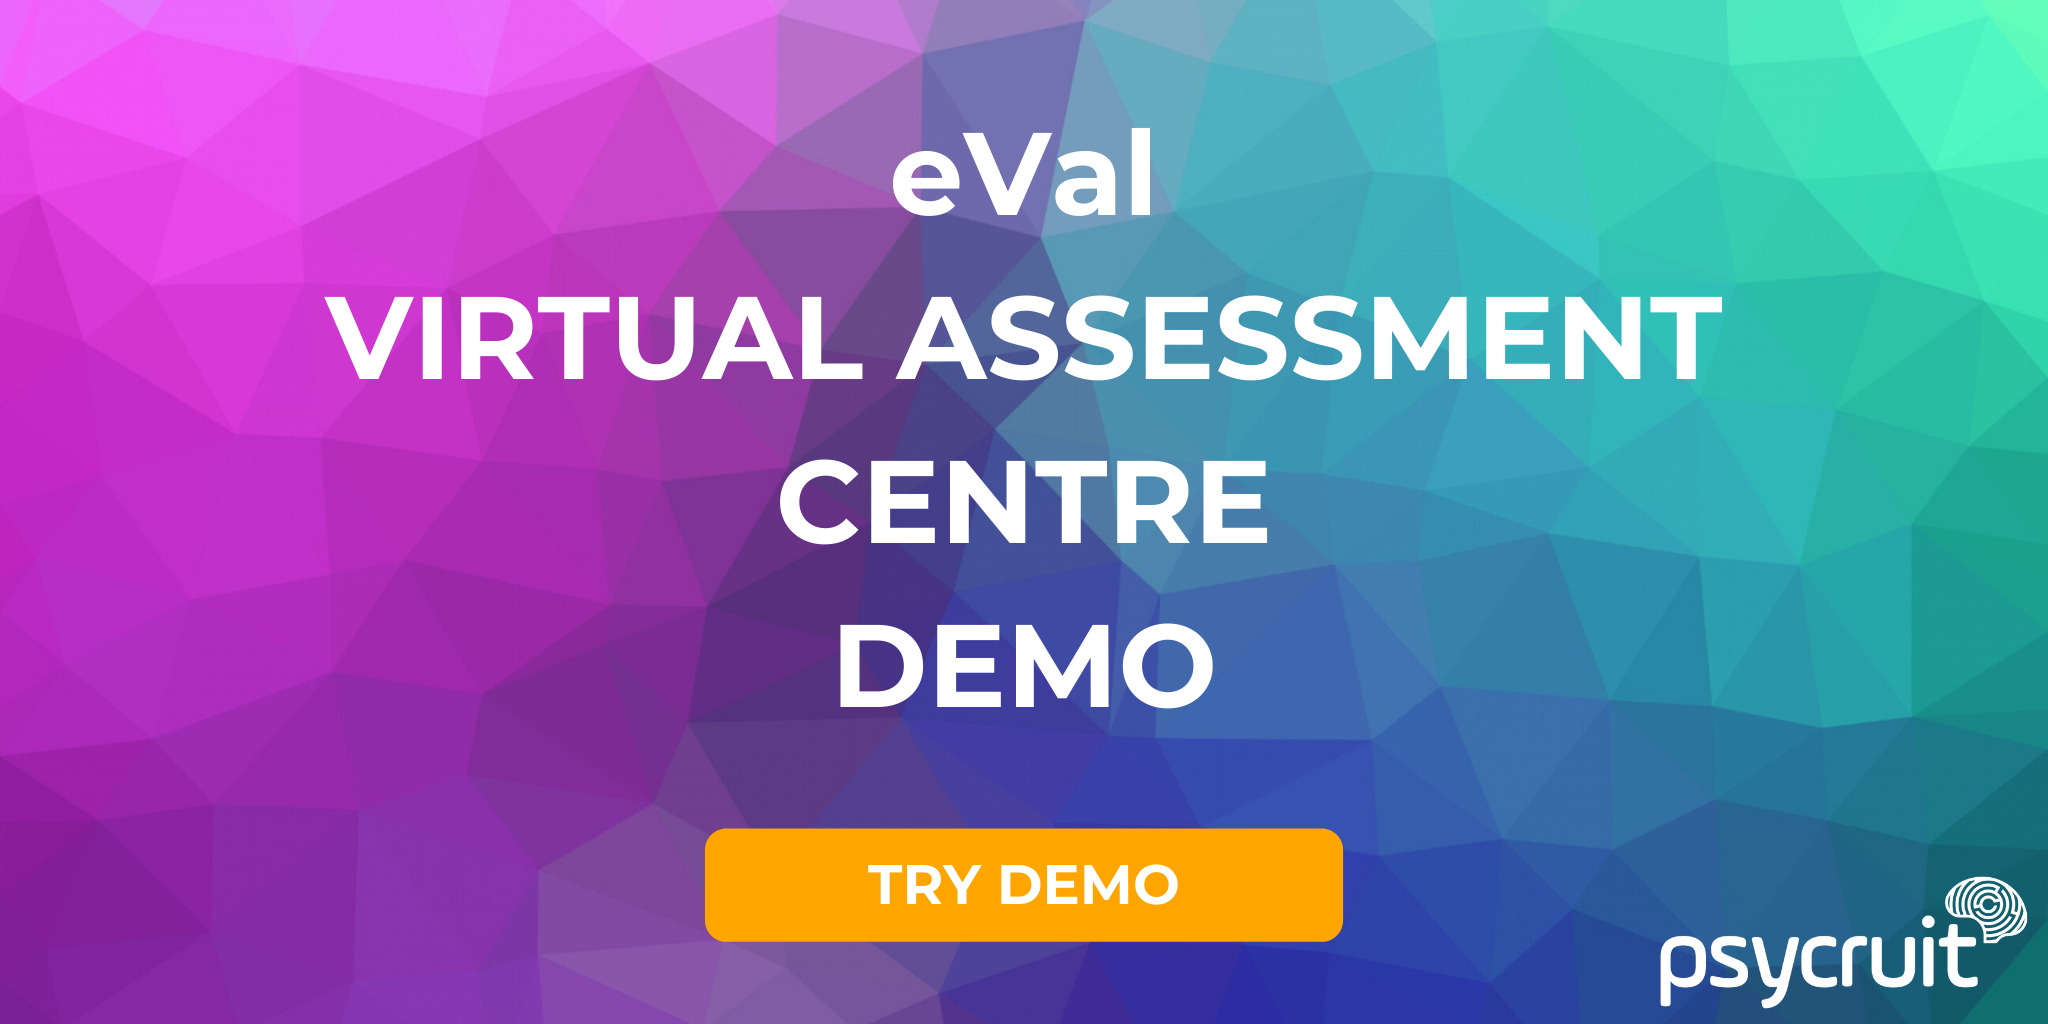 Digital assessment centre demo - eVal digital assessment centres